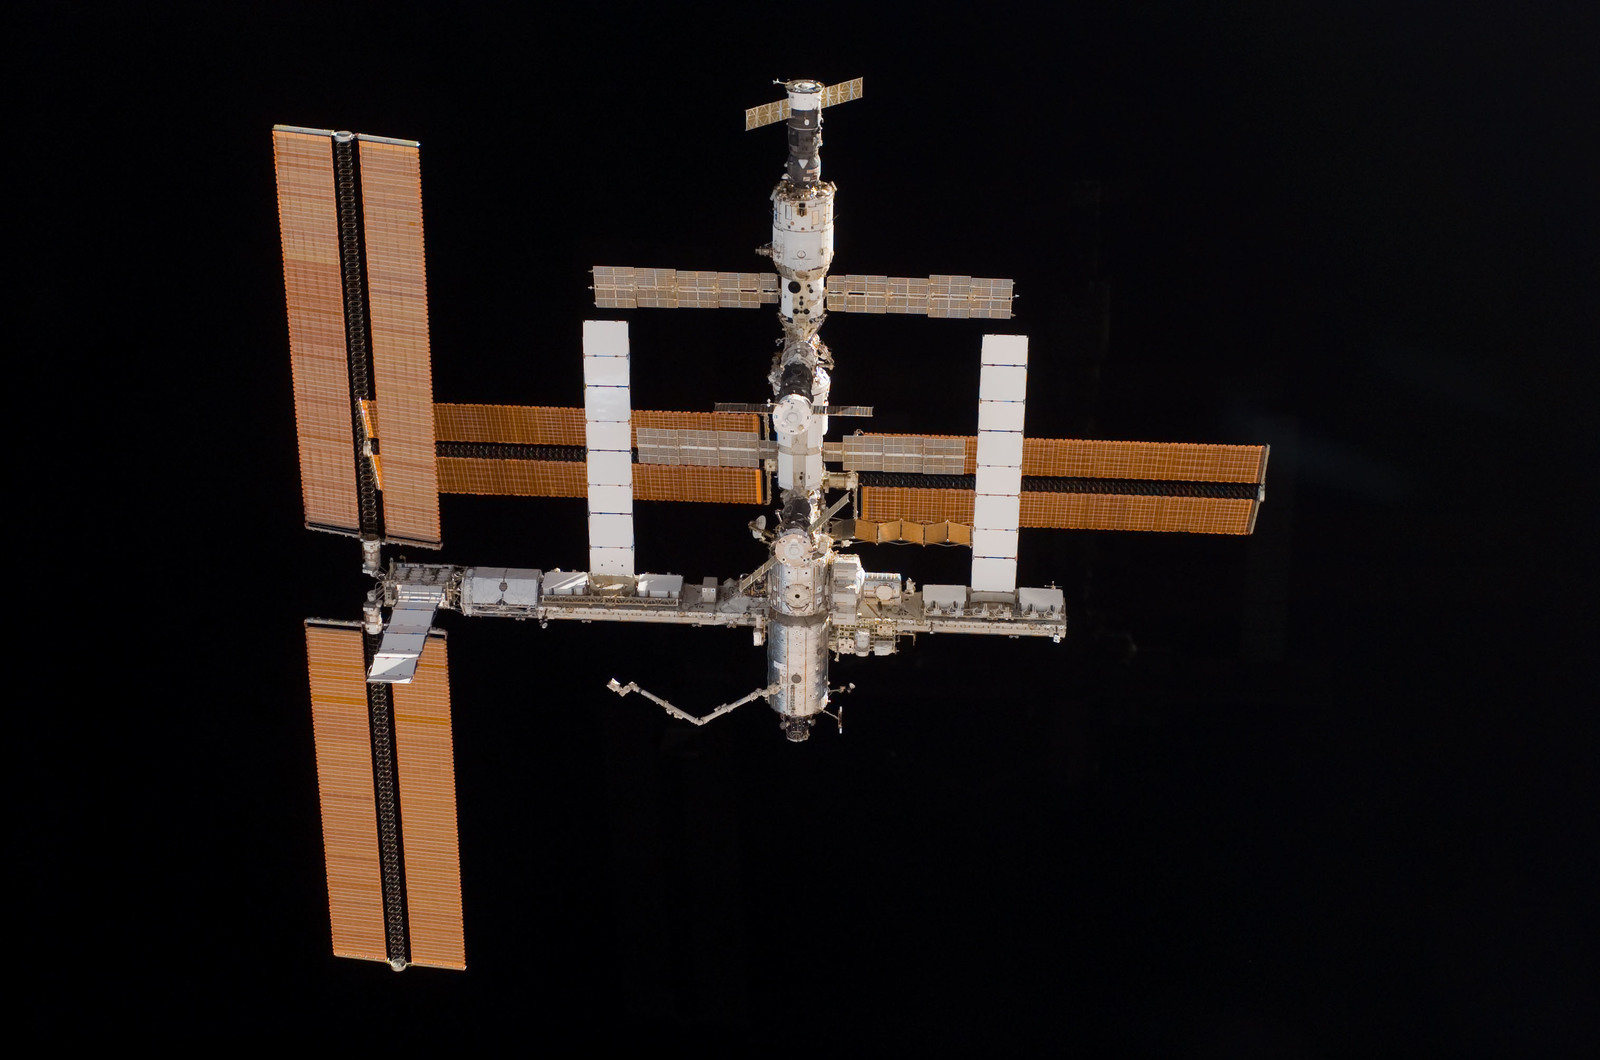 S115E06719 - STS-115 - Overall exterior view of the ISS during undocking and Flyaround Operations for STS-115 Space Shuttle Atlantis